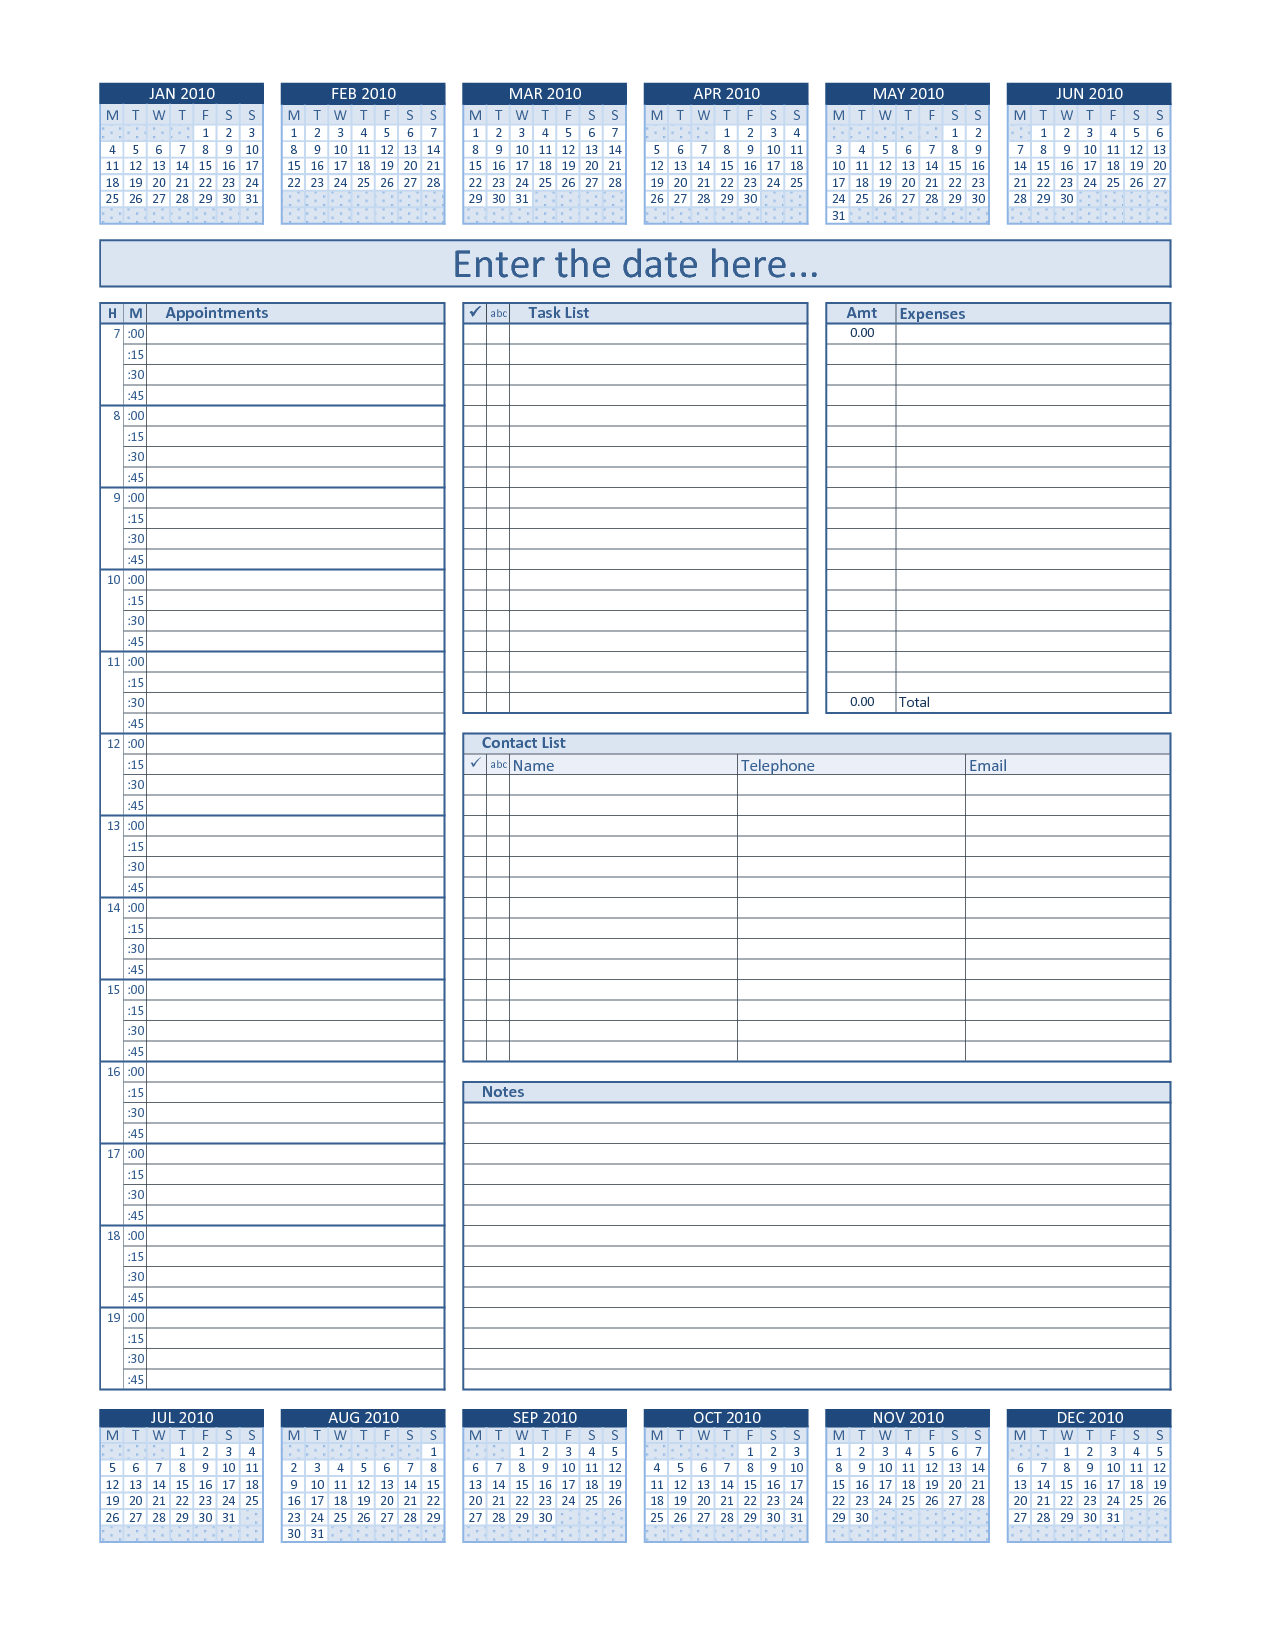 Daily Project Organizer Templates Free | Daily Planner For 2010 with regard to Daily Planner Printable Calendar Templates